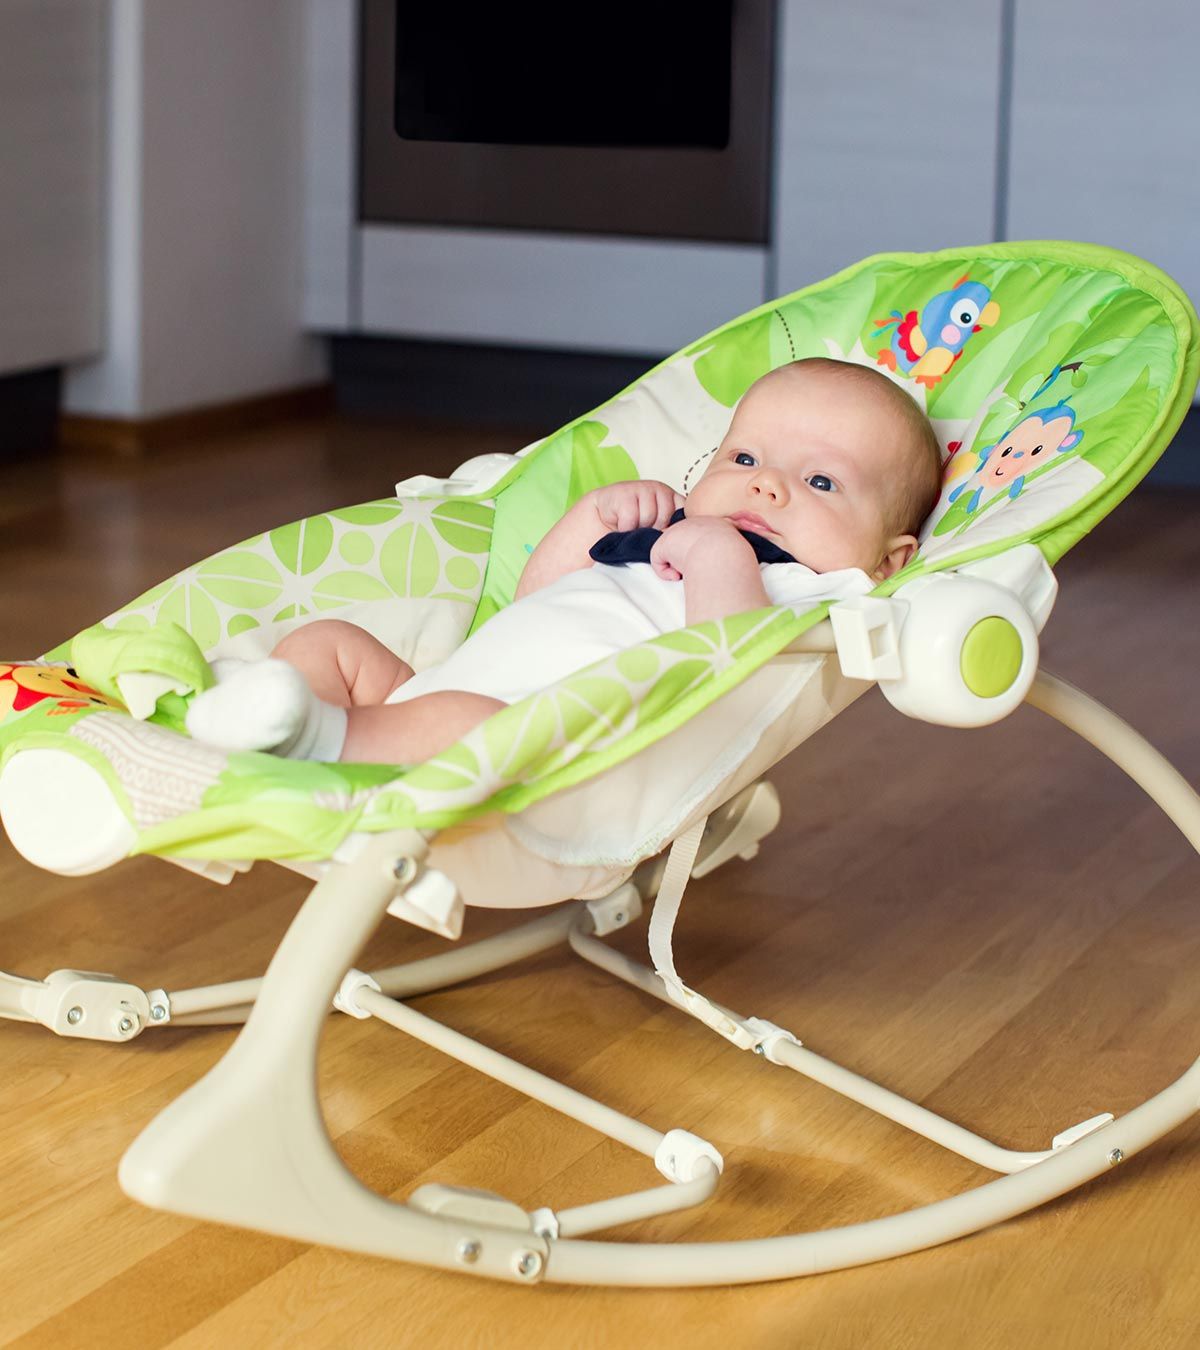 Super 11 Best Nursery Gliders And Baby Rocking Chairs In 2019 Evergreenethics Interior Chair Design Evergreenethicsorg